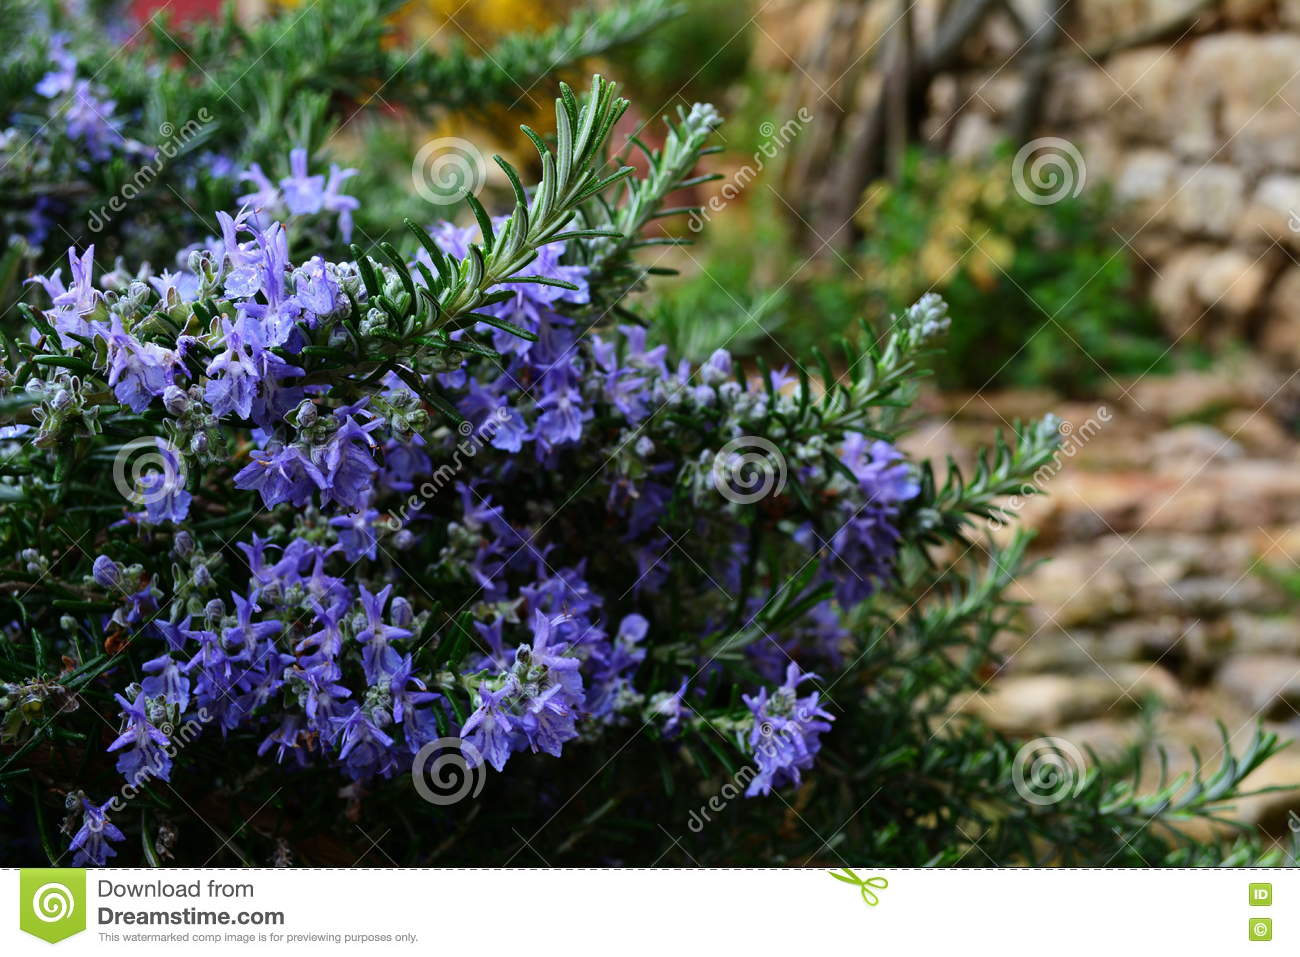 Rosemary With Blue Flowers Stock Photo Image Of Cultivation 73984350